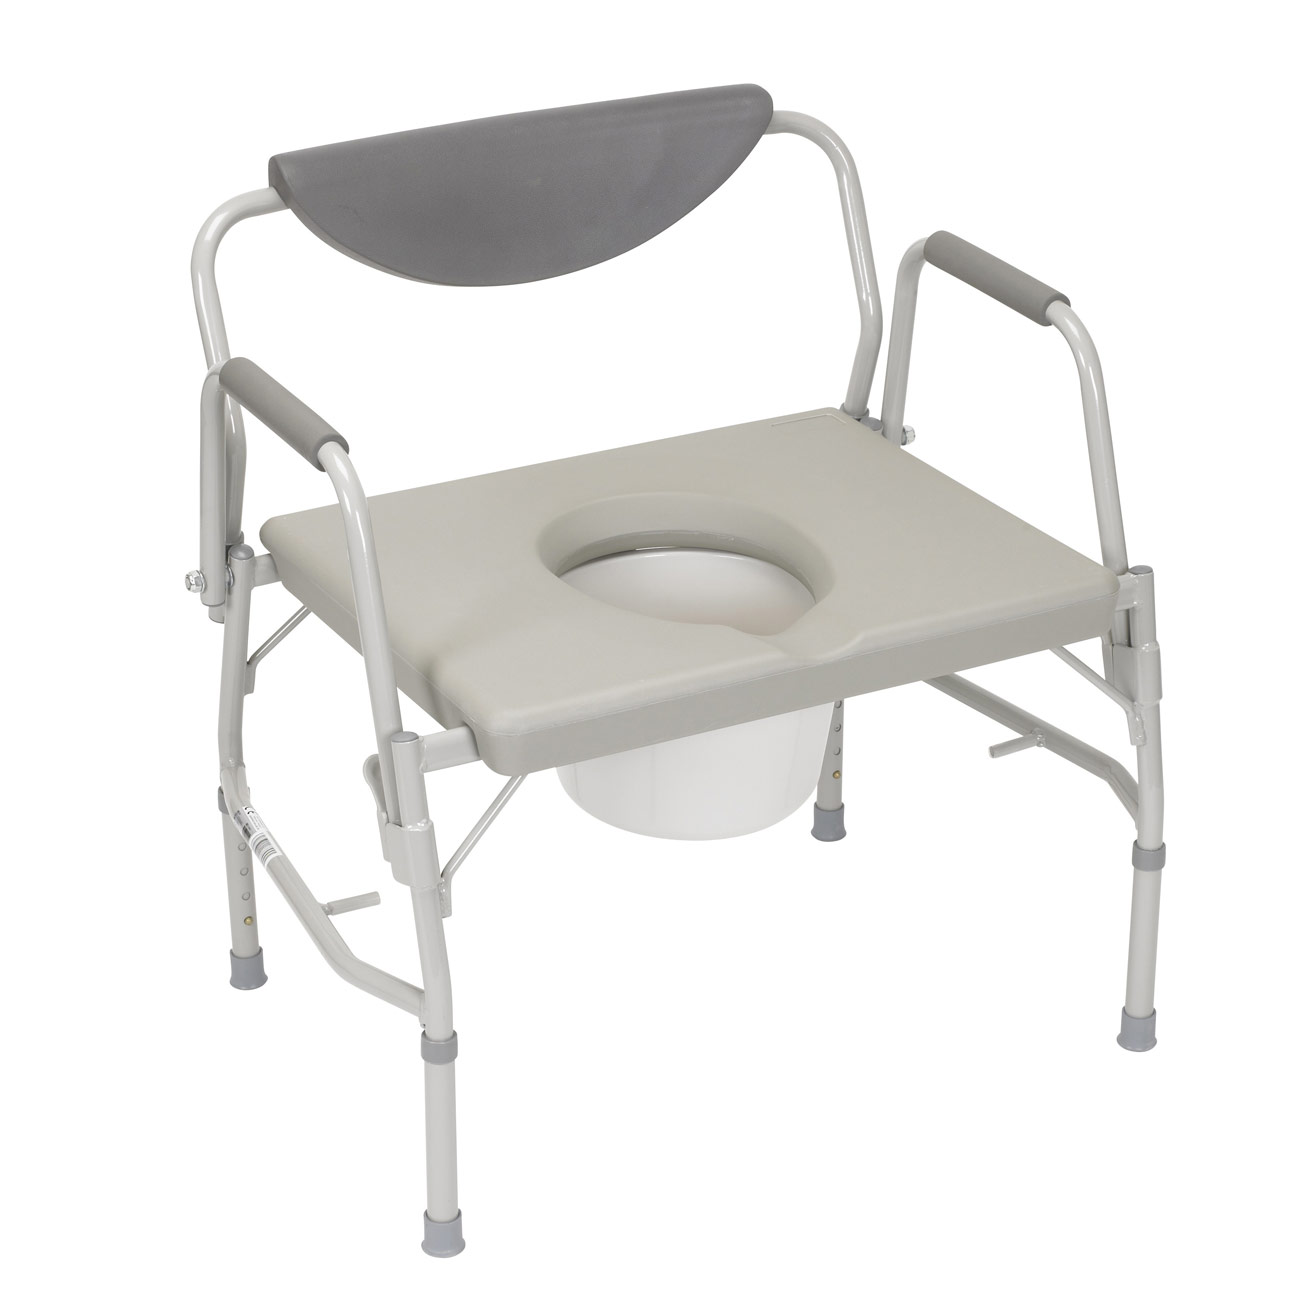 Oversized Drop-Arm Commode